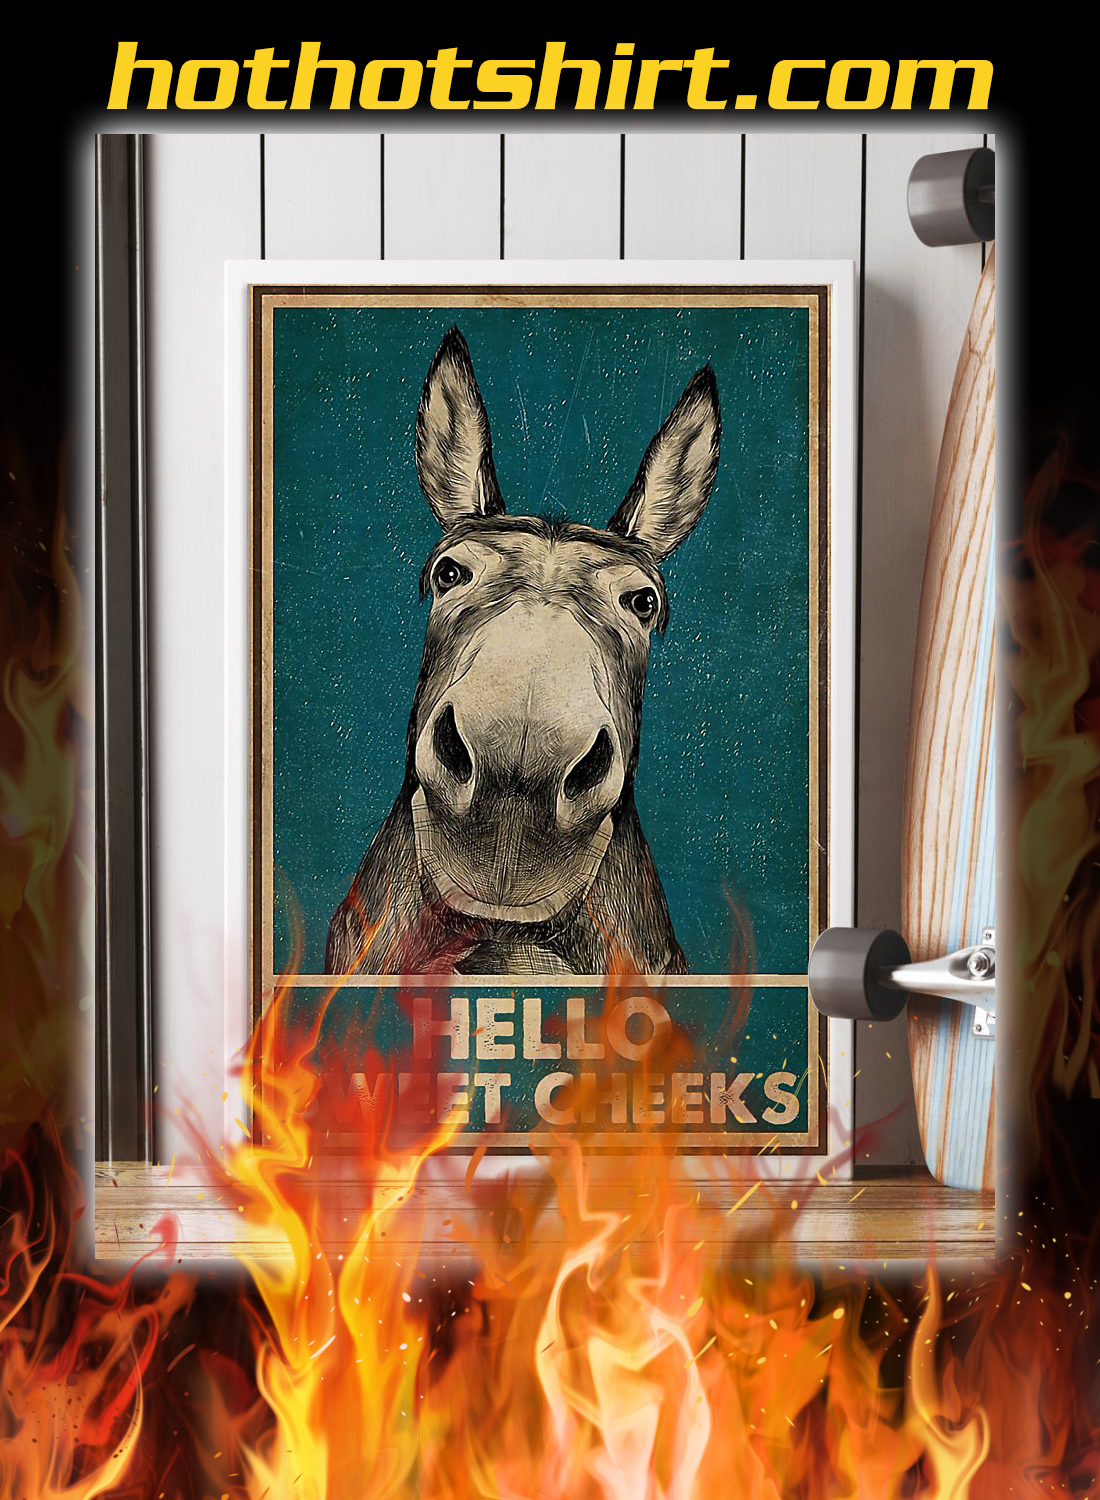 Hello sweet cheeks donkey poster 2